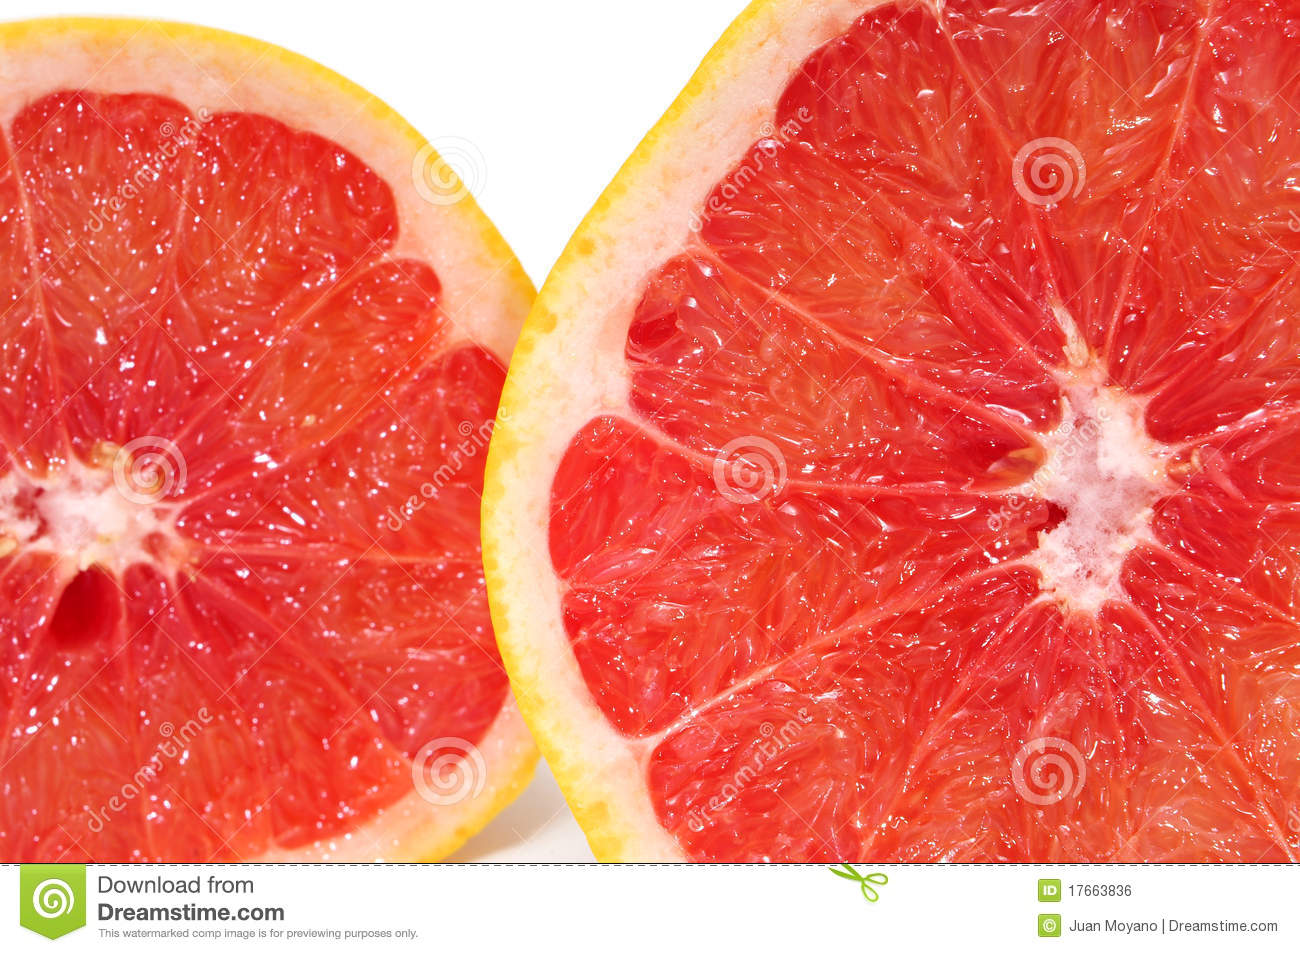 how to cut a grapefruit properly